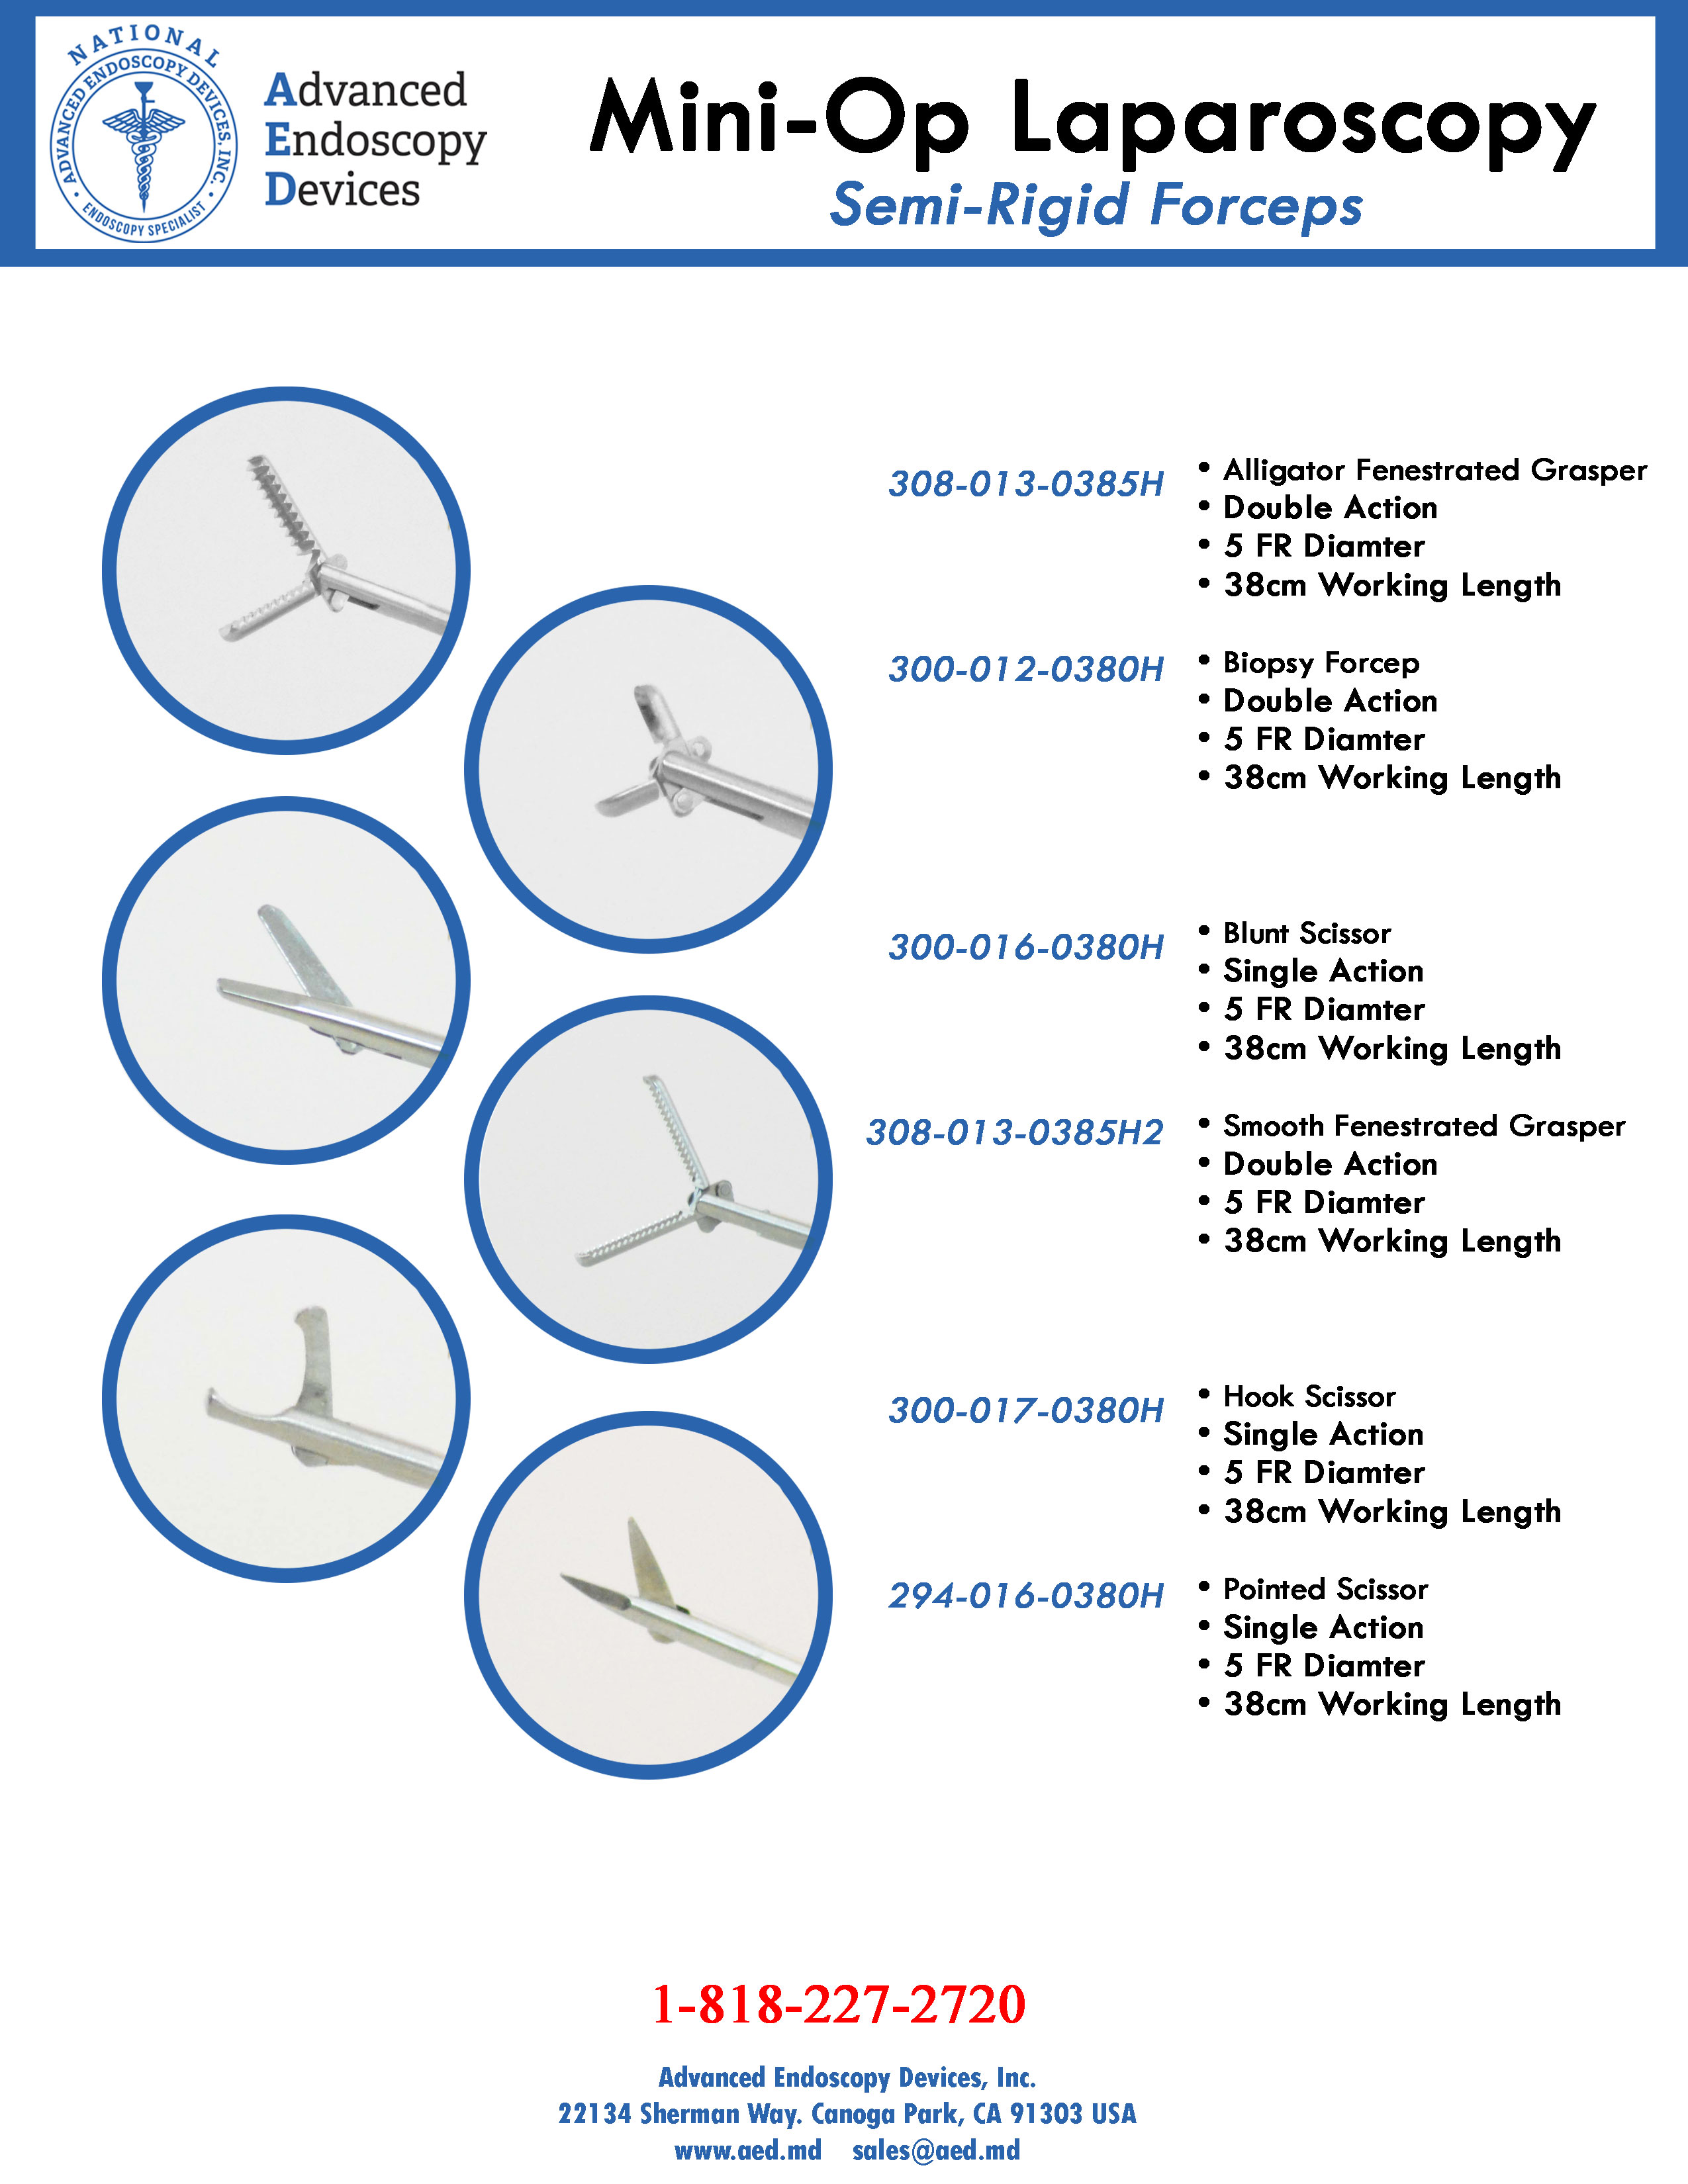 Mini Op-Laparoscopy Semi-Rigid Forceps Product Page